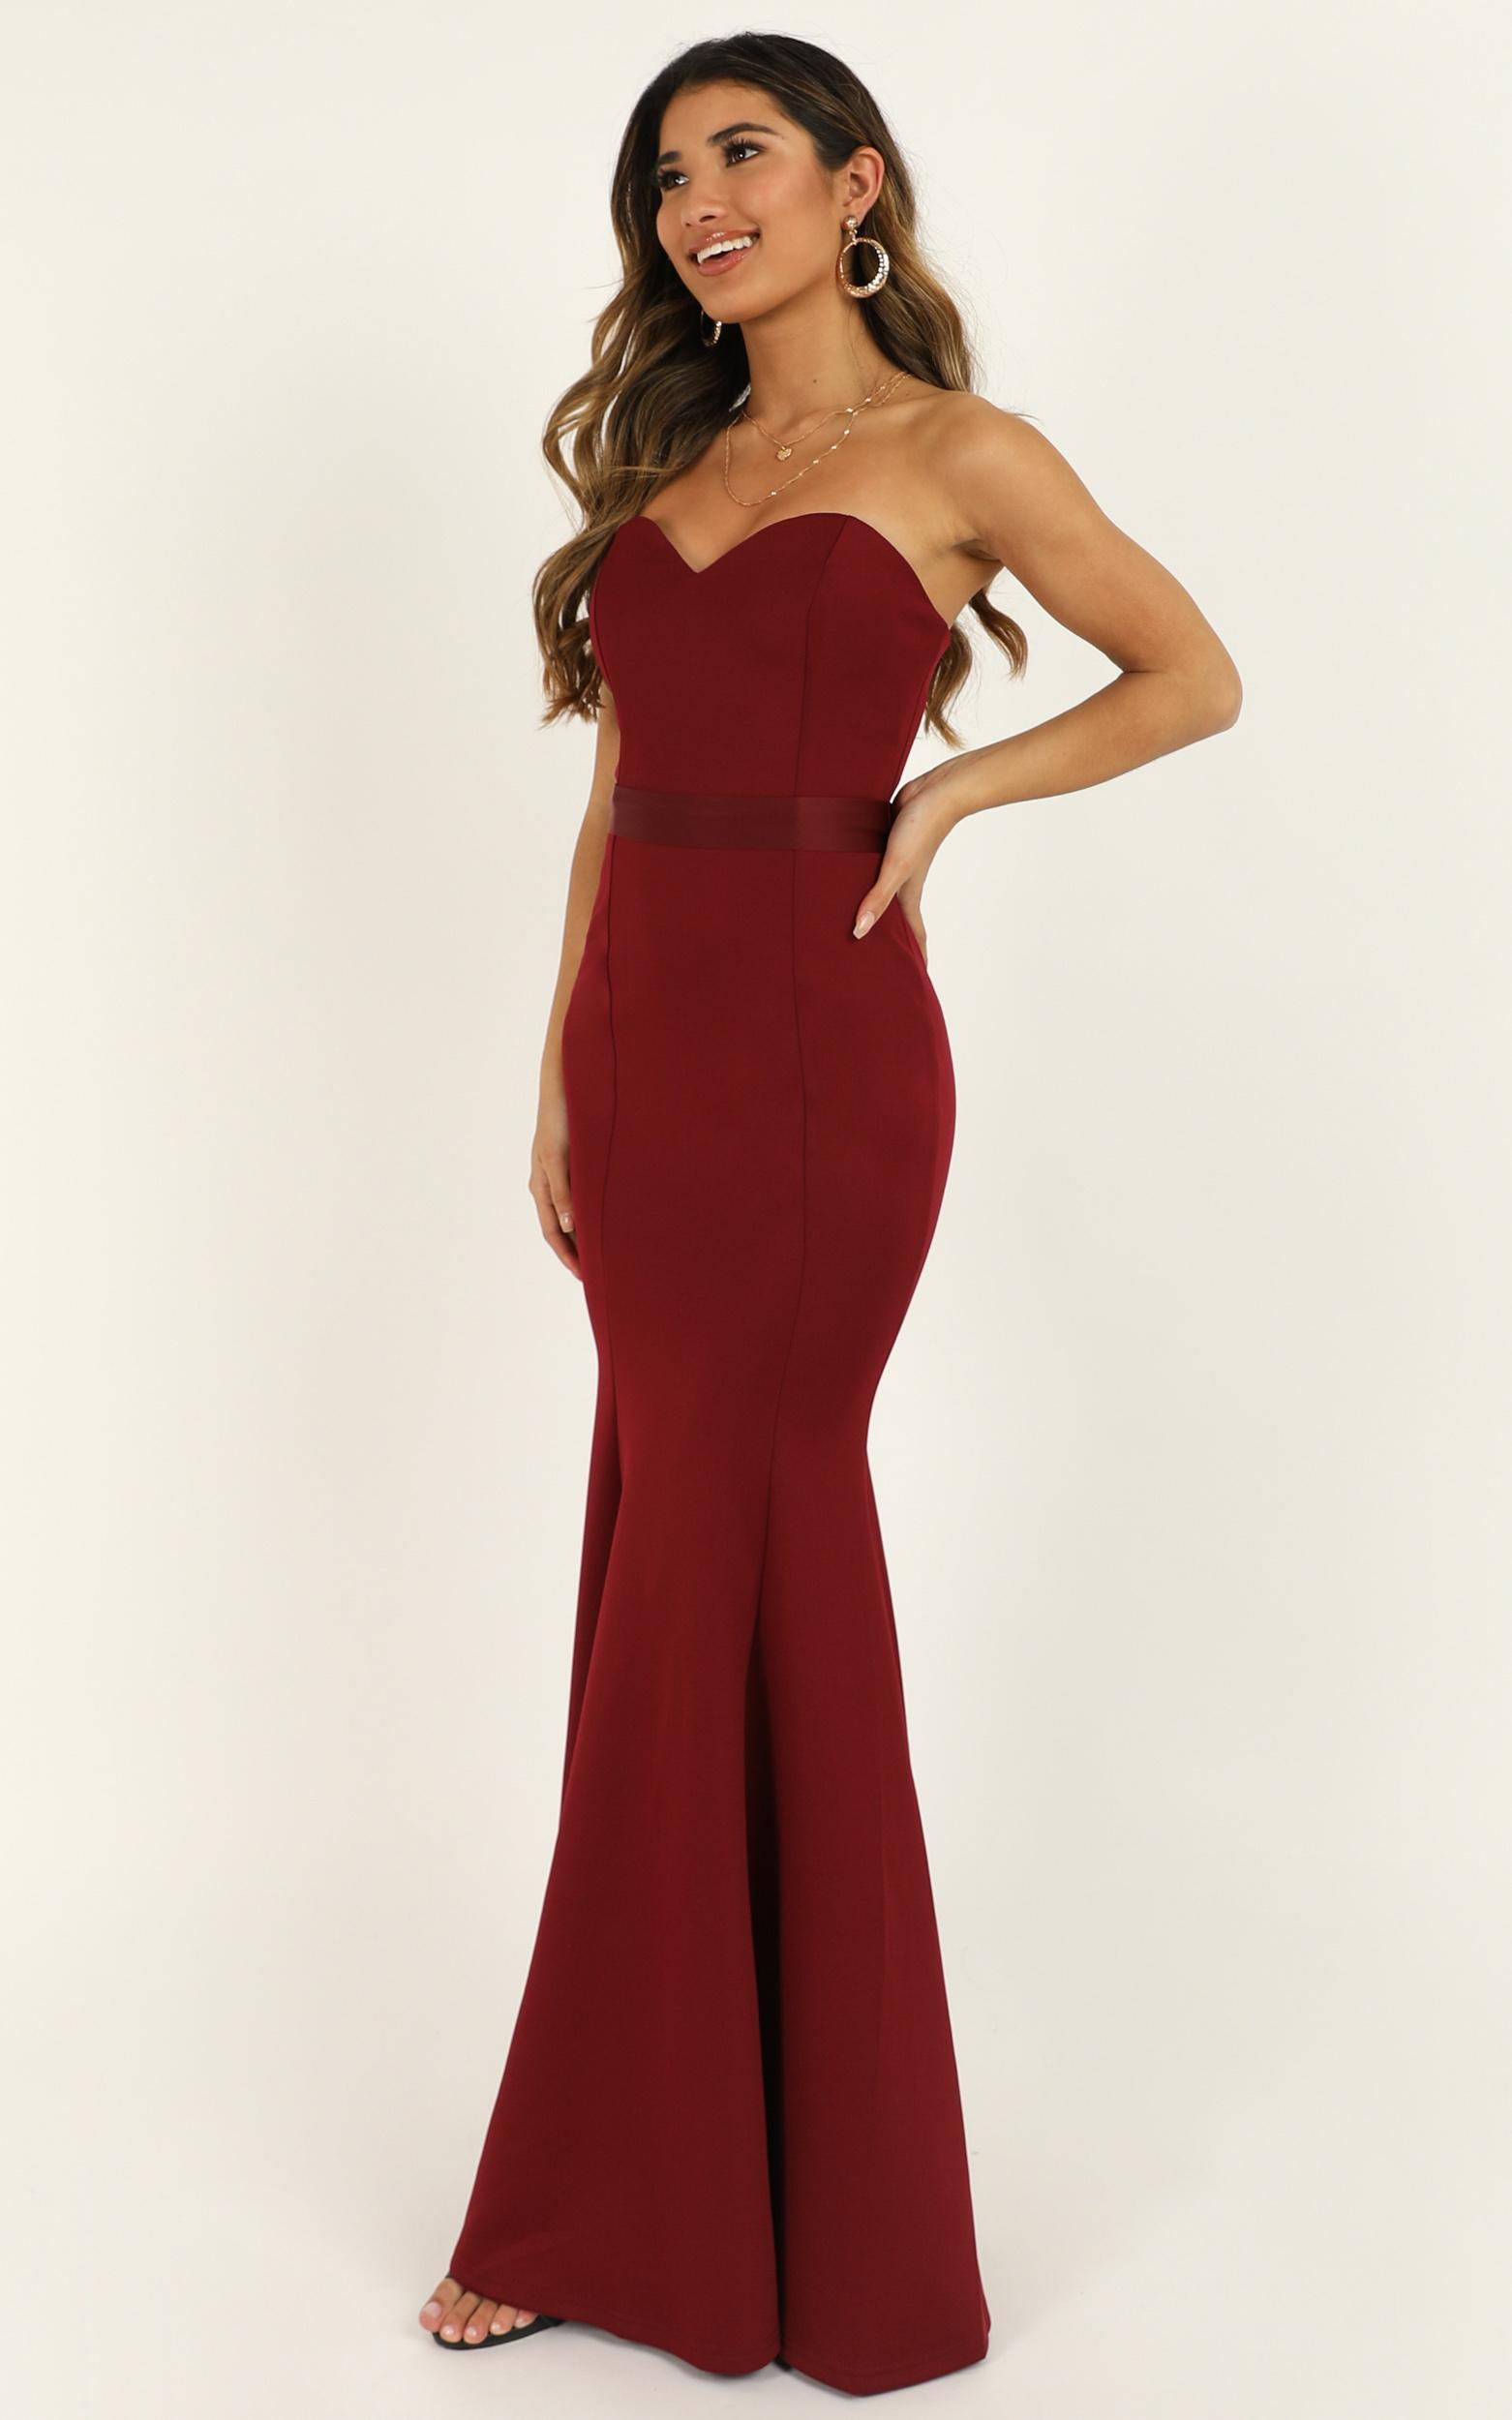 Lasting Moment Maxi Dress in wine - 20 (XXXXL), Wine, hi-res image number null